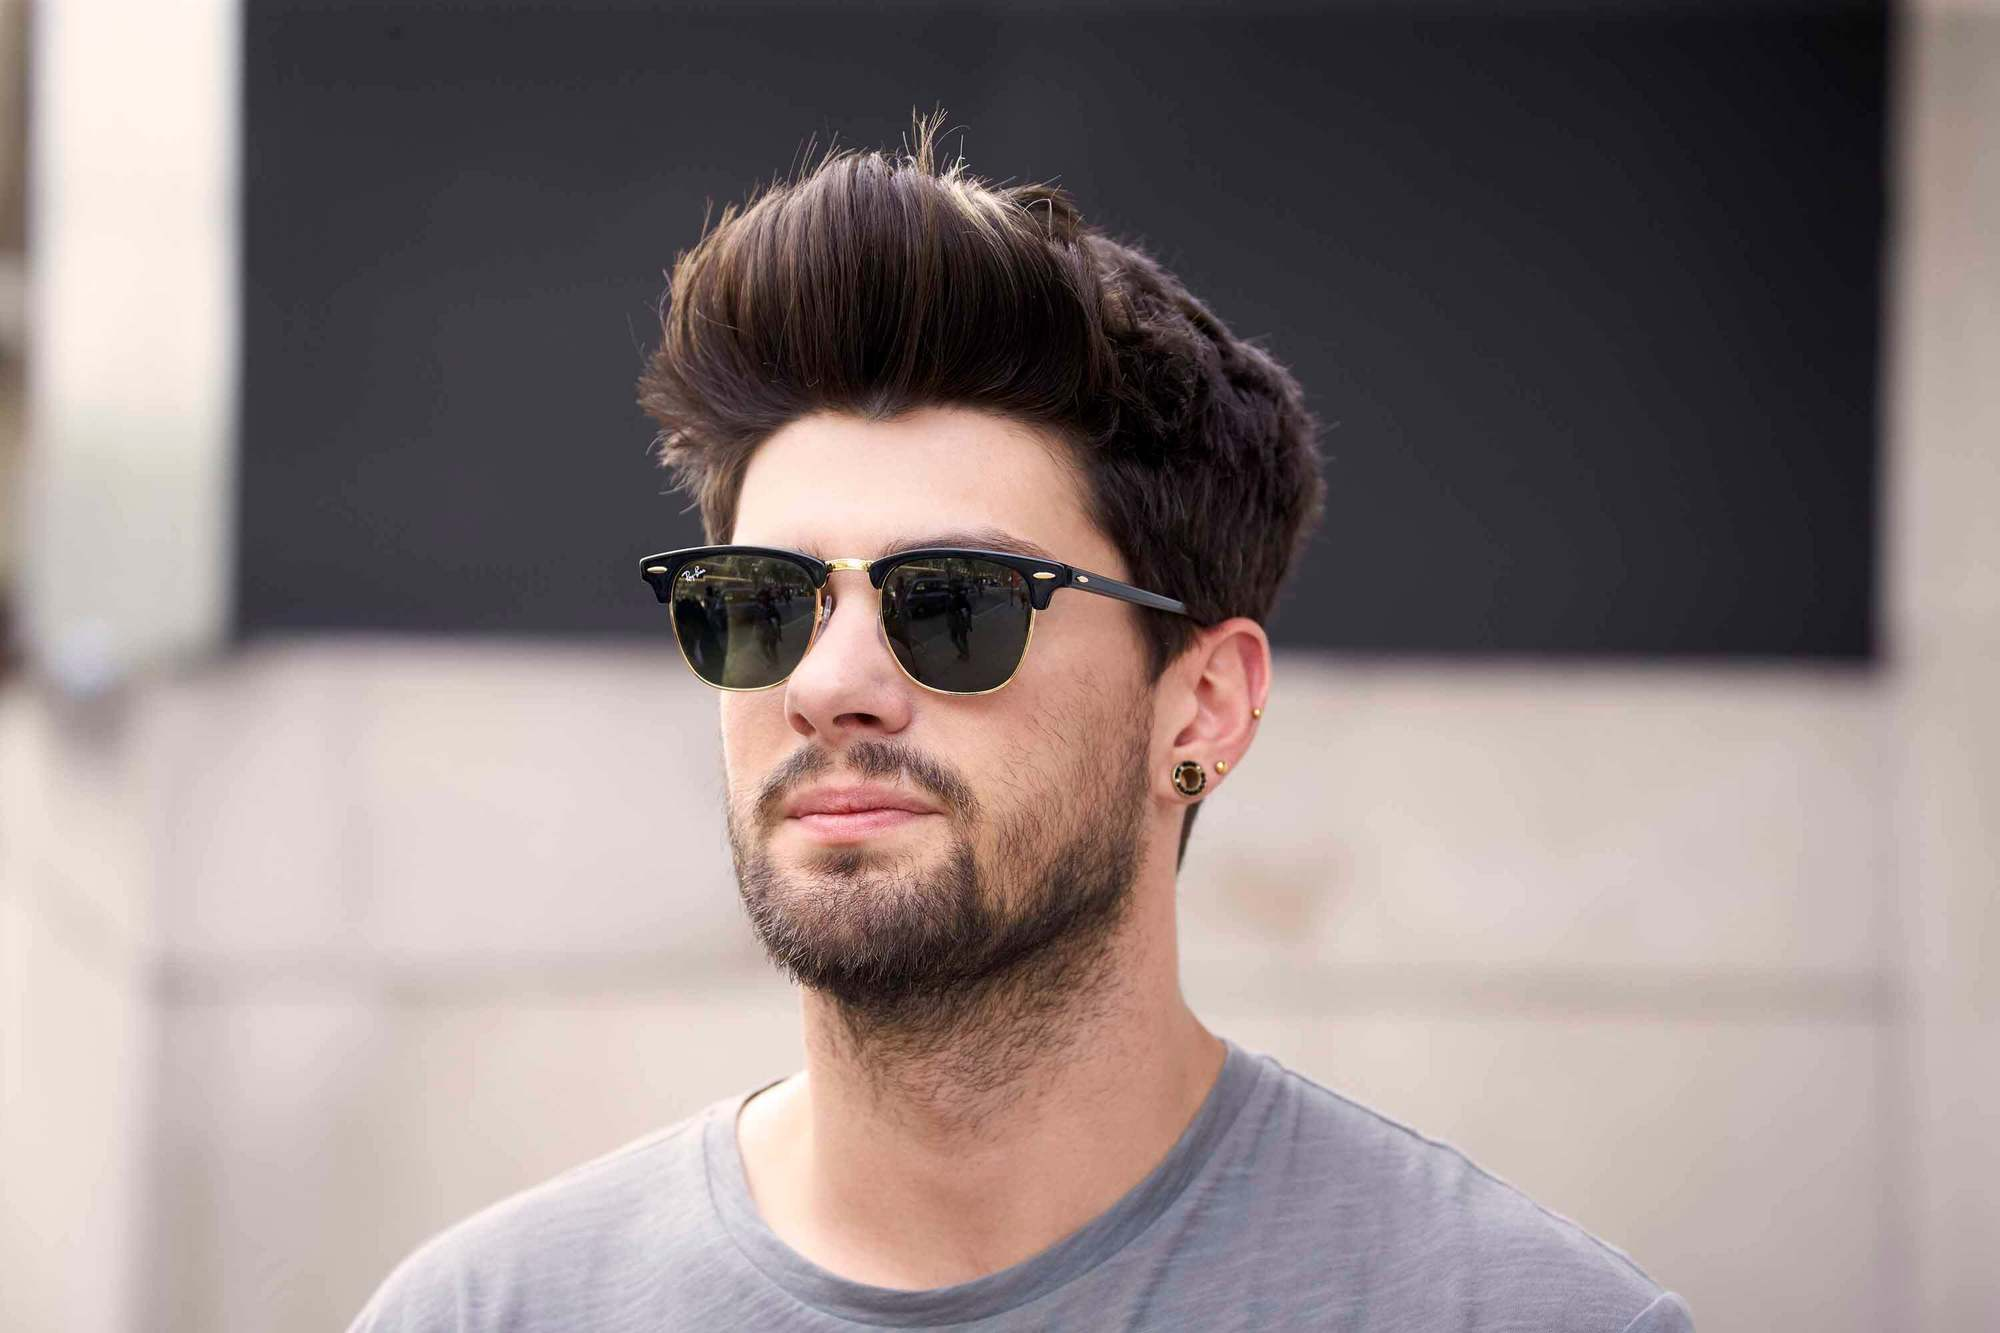 Haircuts For Thick Hair 5 Cuts That Will Enhance Your Natural Texture